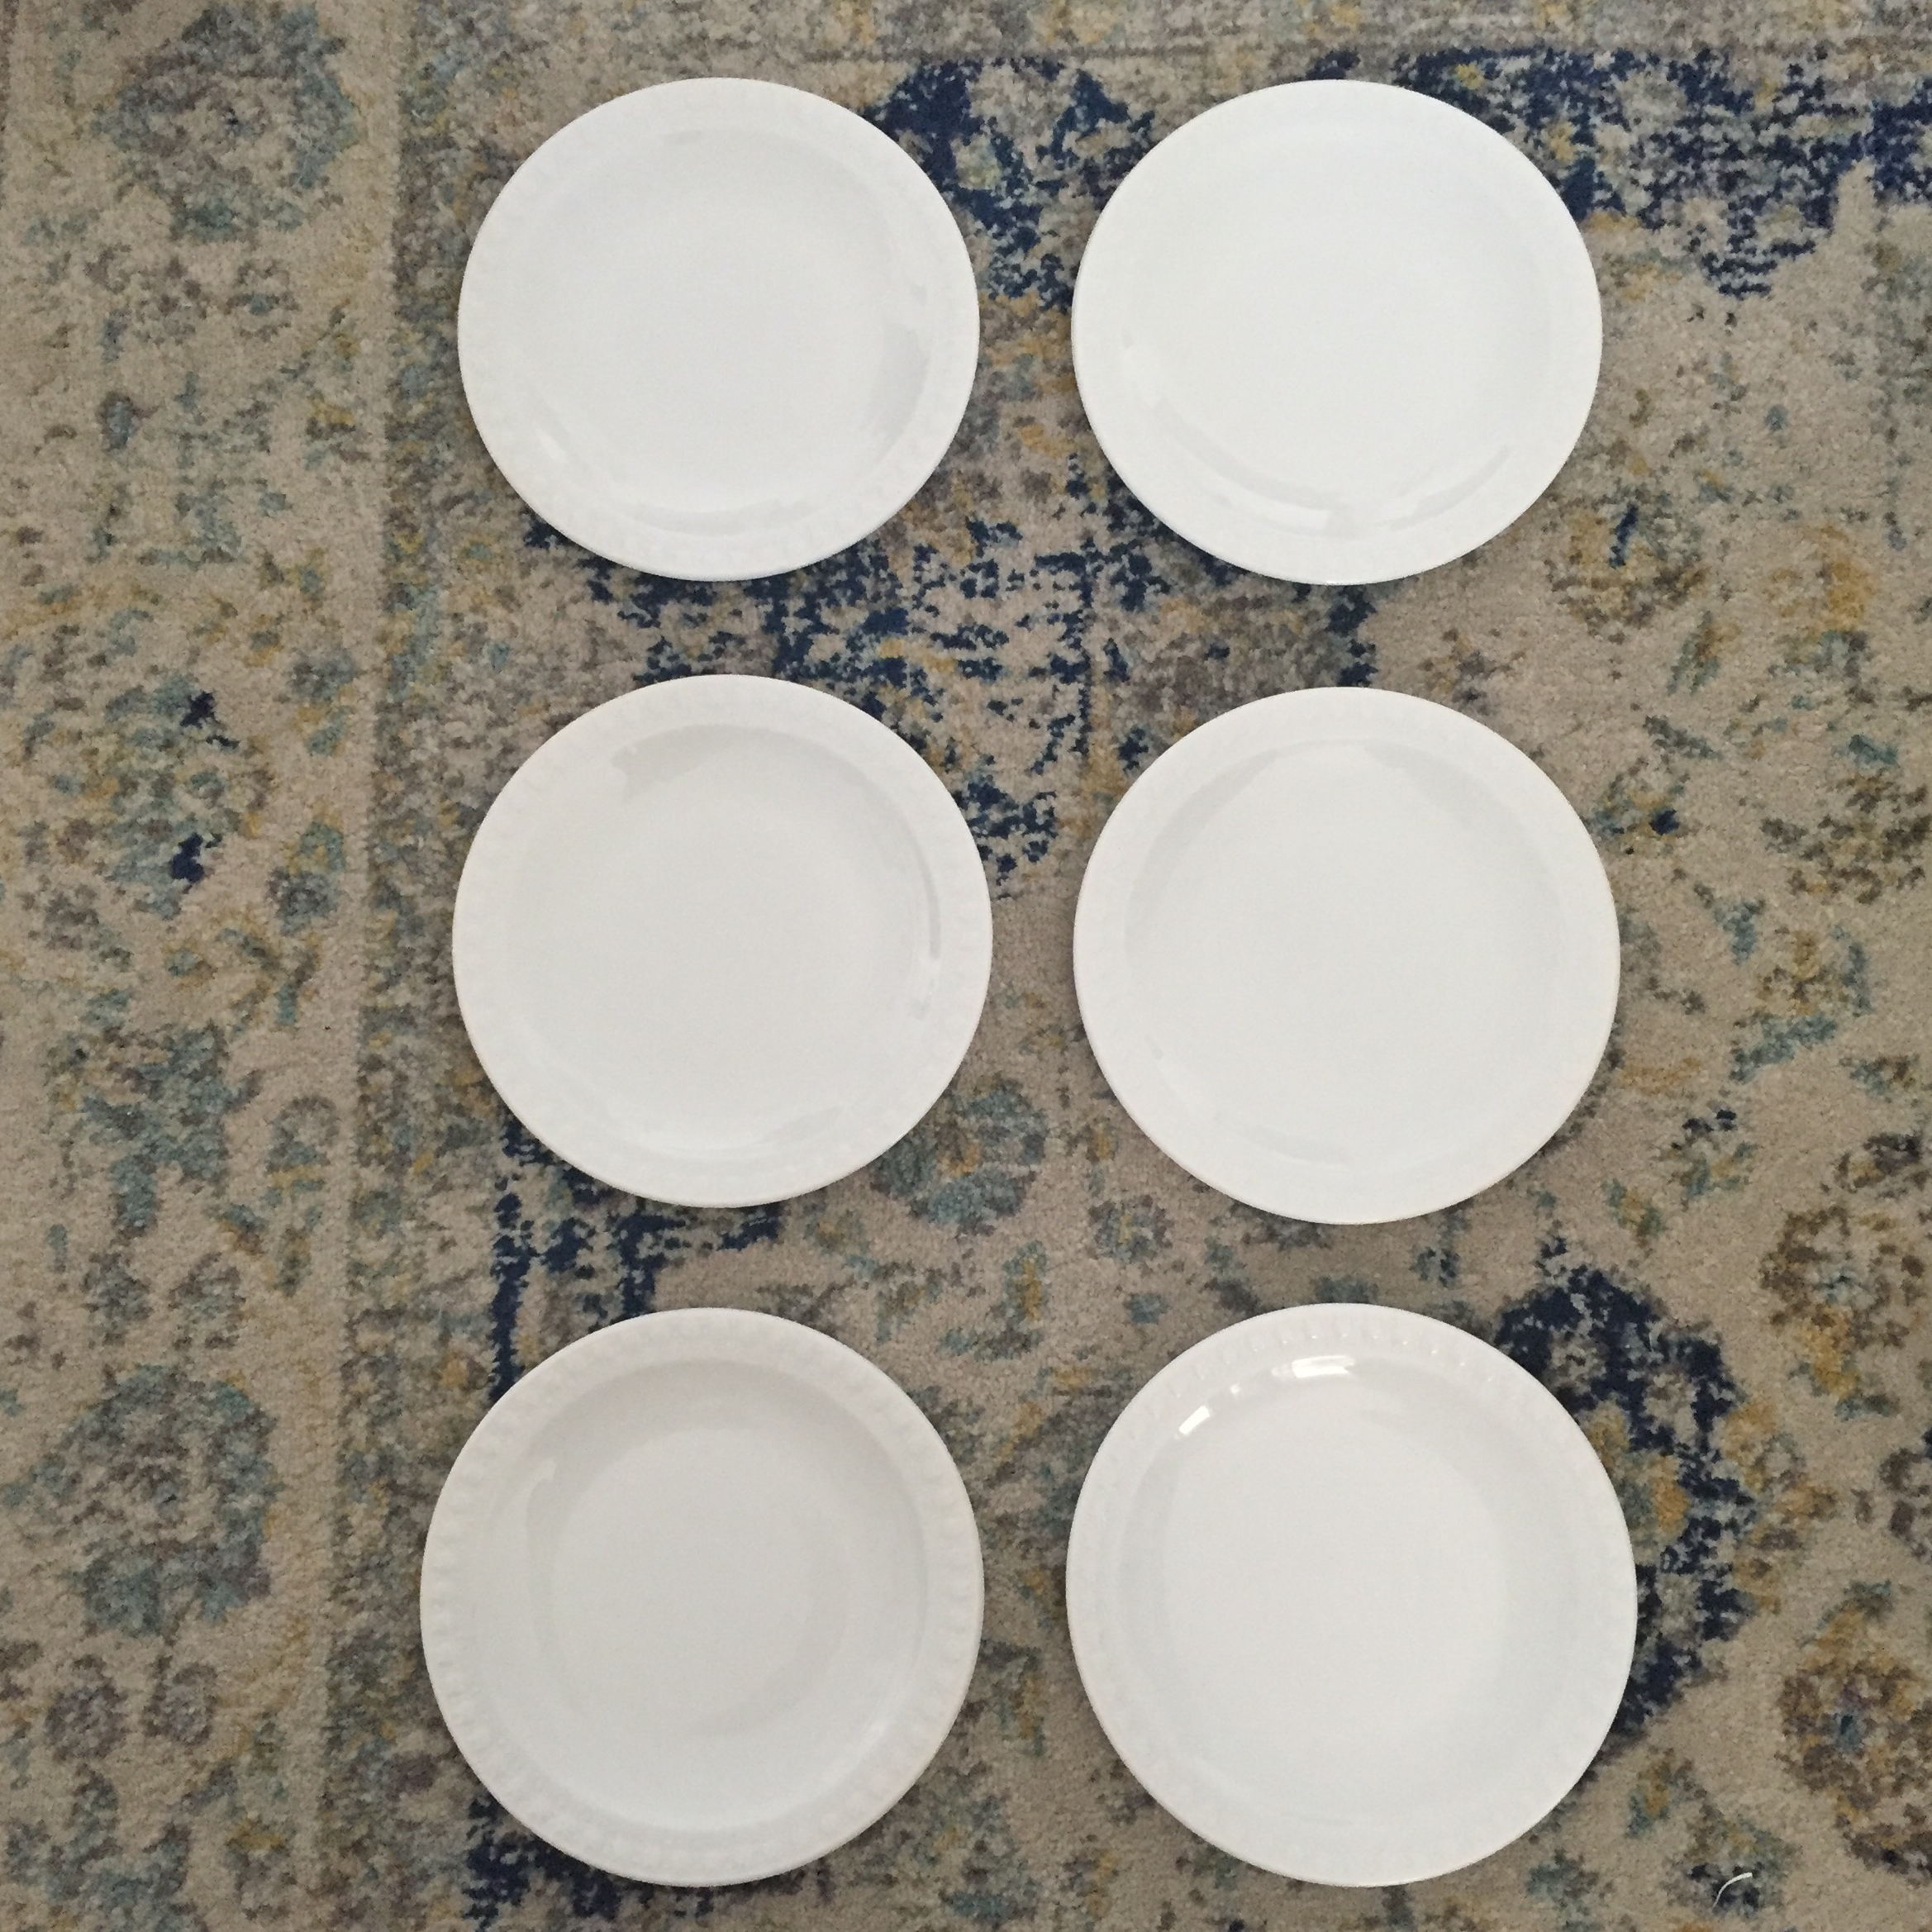 Vintage Corning Pyroceram Tableware White Dessert Plates - Set of 6 - Image 2 of 11 : pyroceram tableware by corning - pezcame.com